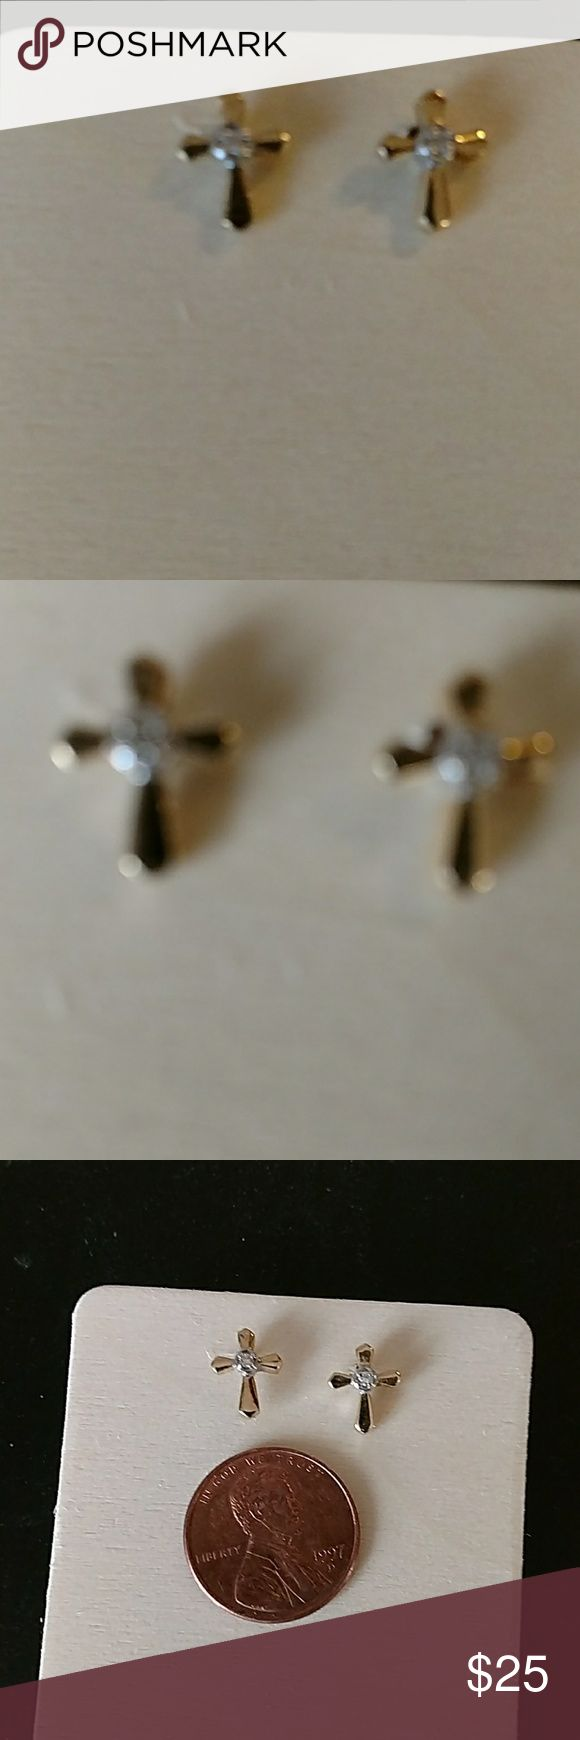 Gold and diamond cross earrings 14 carrot gold cross earrings with small diamonds. Jewelry Earrings